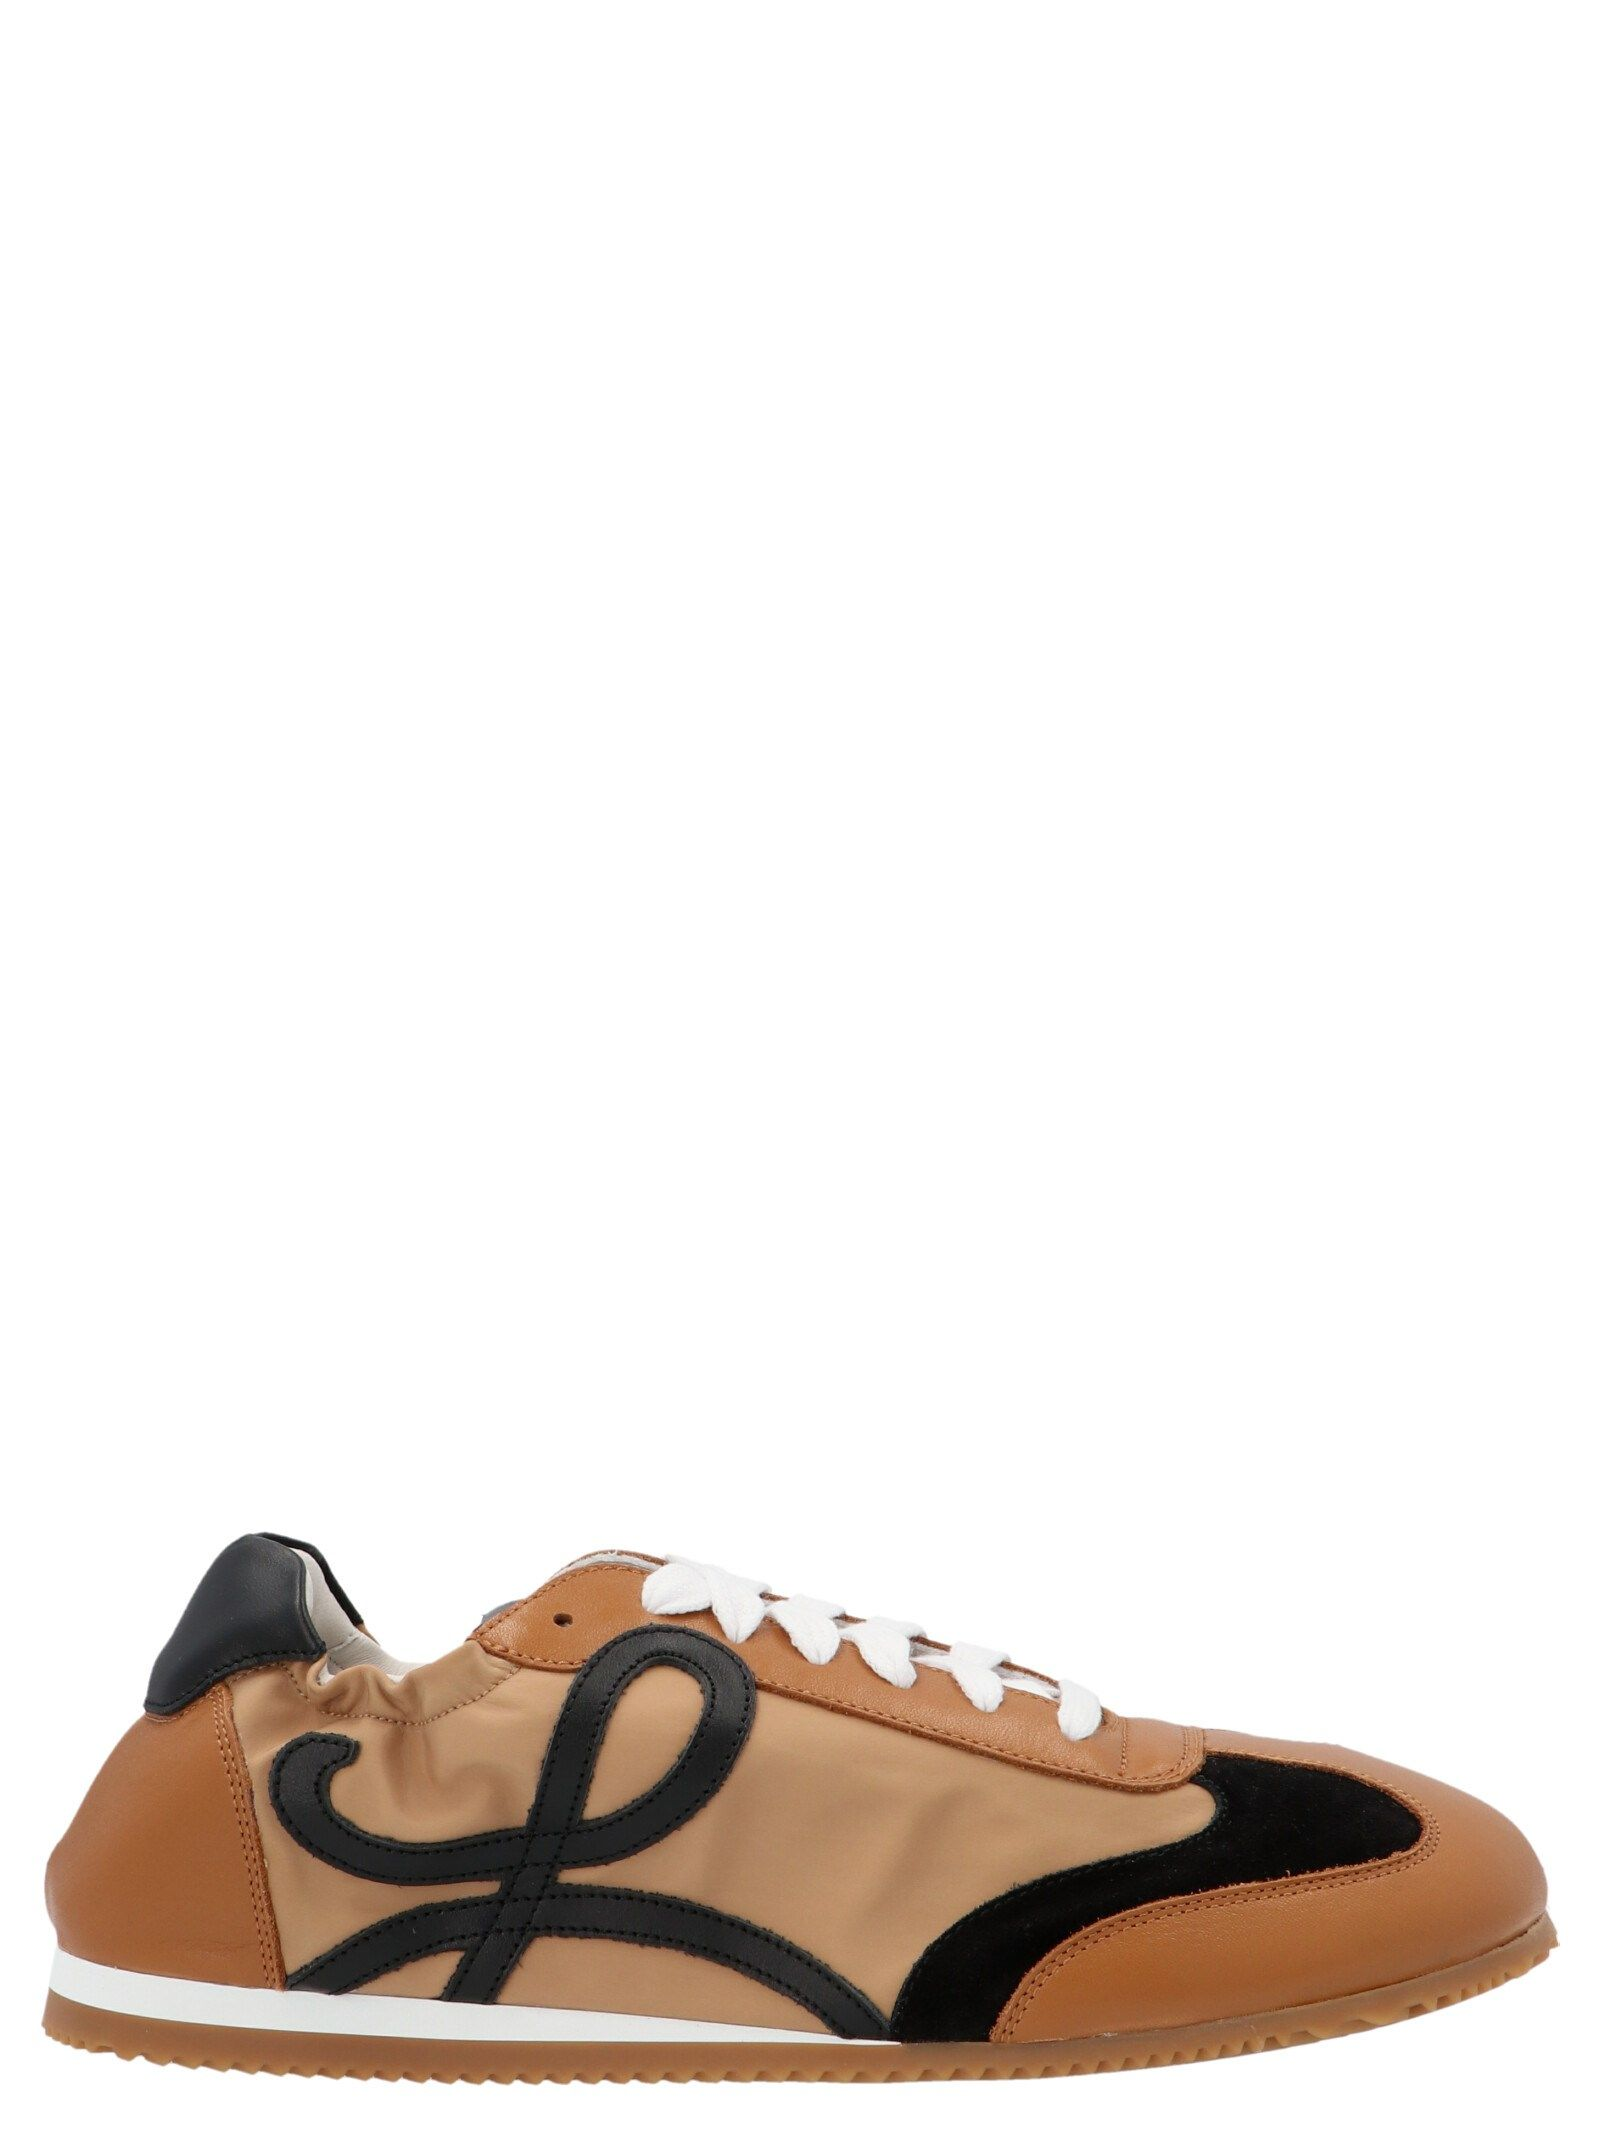 Loewe LOEWE WOMEN'S BROWN OTHER MATERIALS SNEAKERS